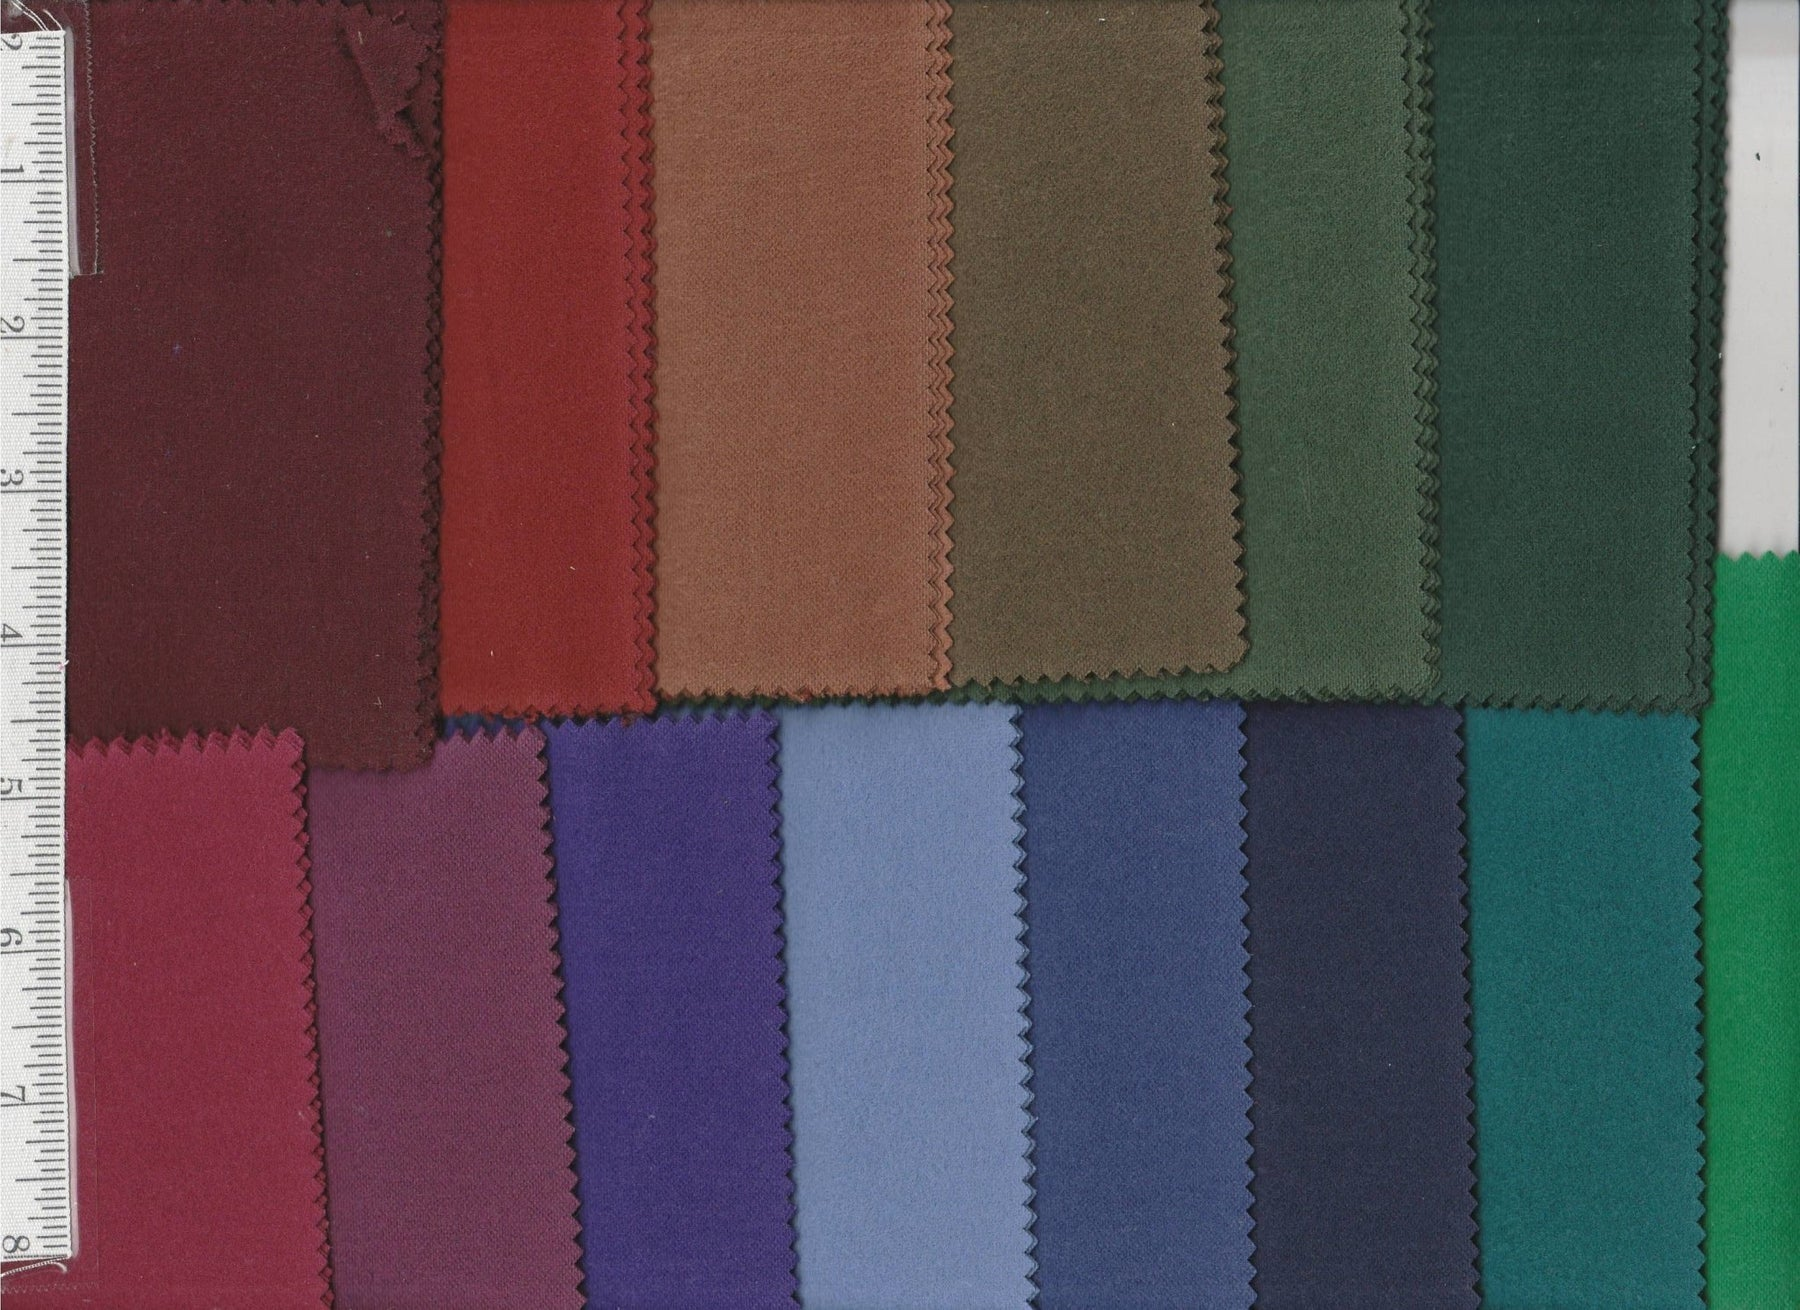 Benartex FLANNEL - Charm Pack - Basic Solids - RebsFabStash